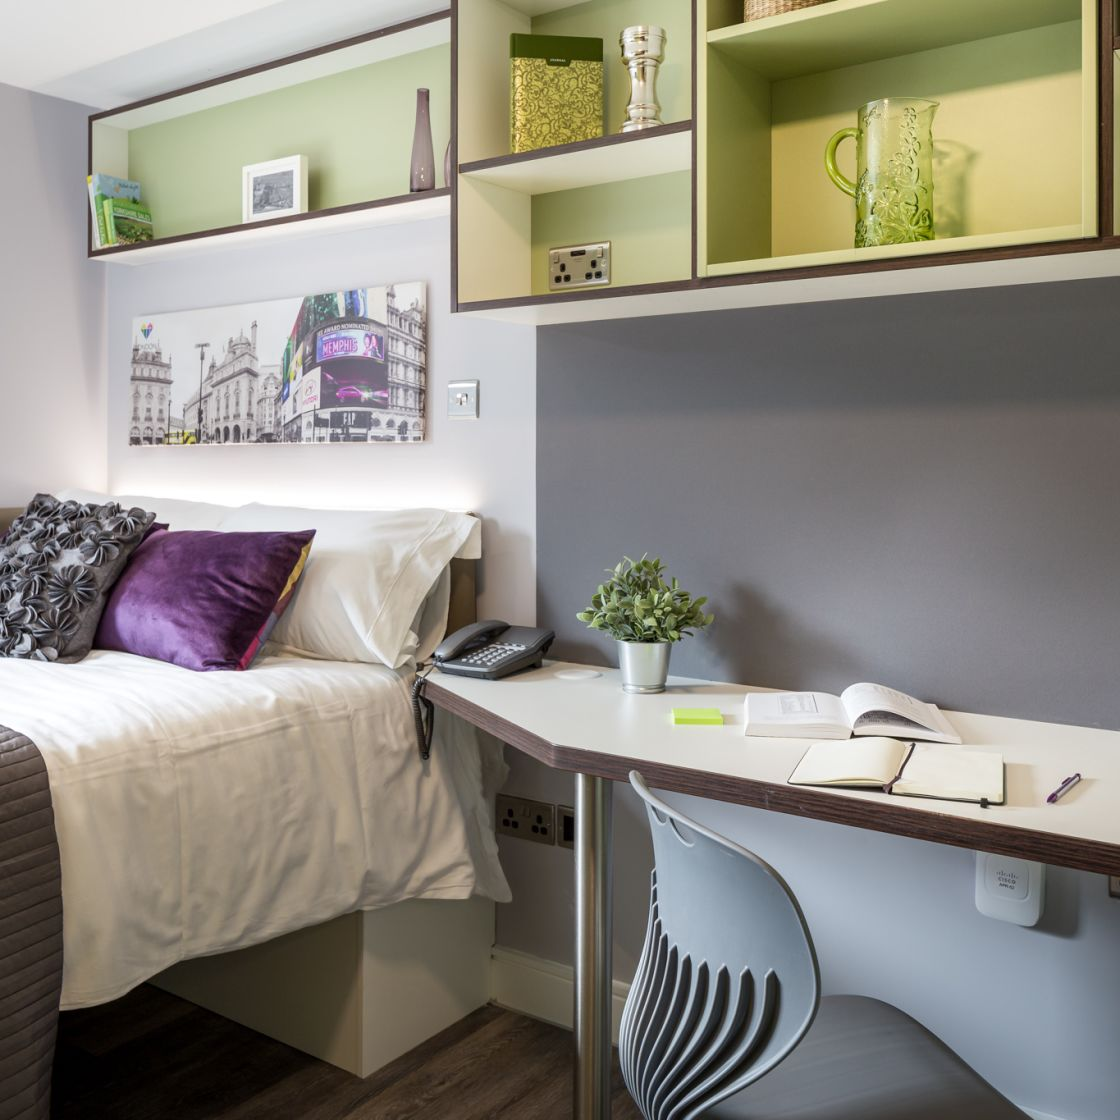 Neo Student Apartment in Leeds with king size bed and desk at IconInc, The Glassworks.